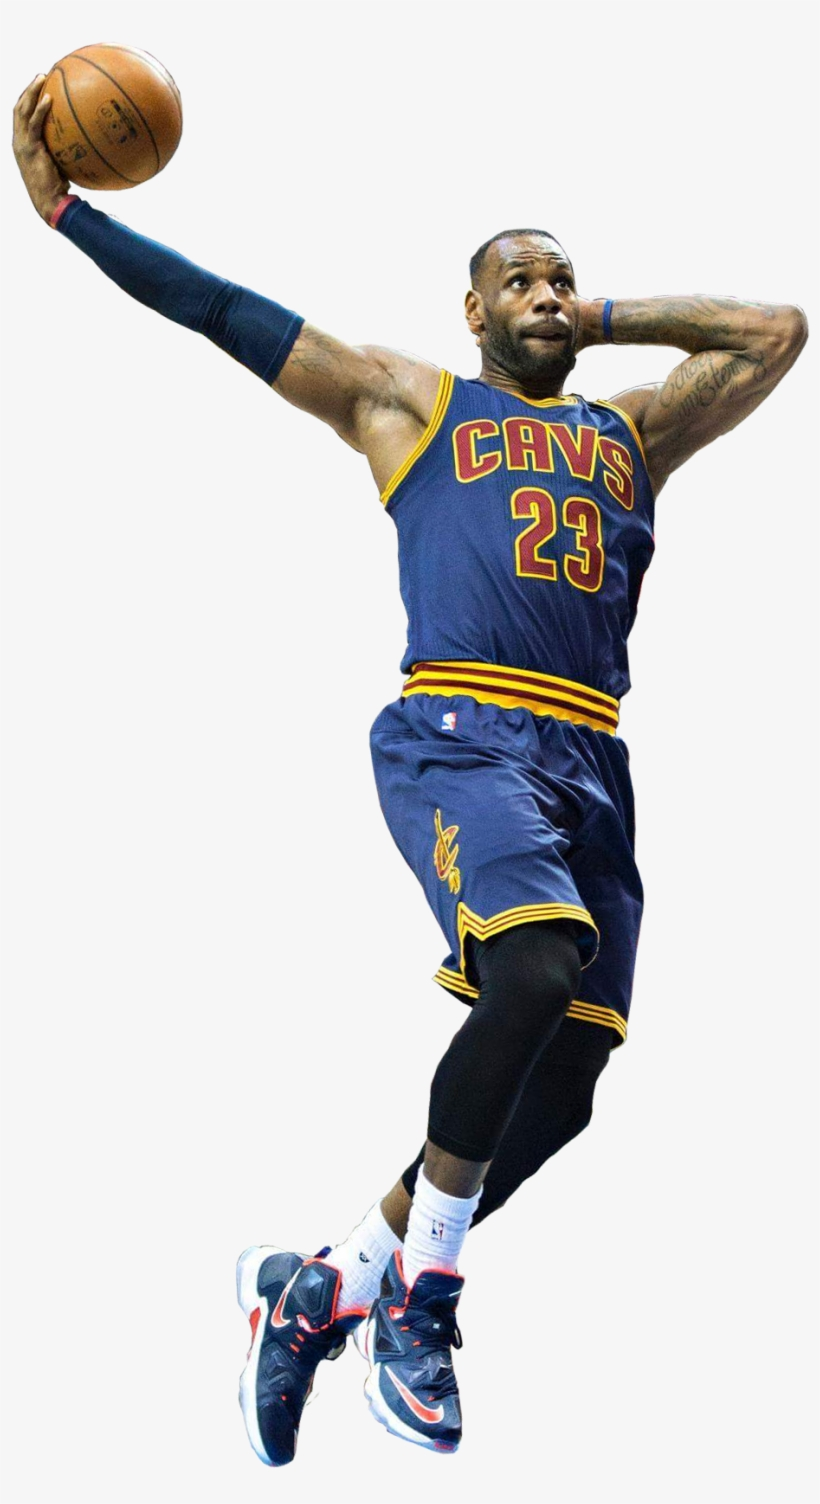 Lebron James Dunk Png, png collections at sccpre.cat.